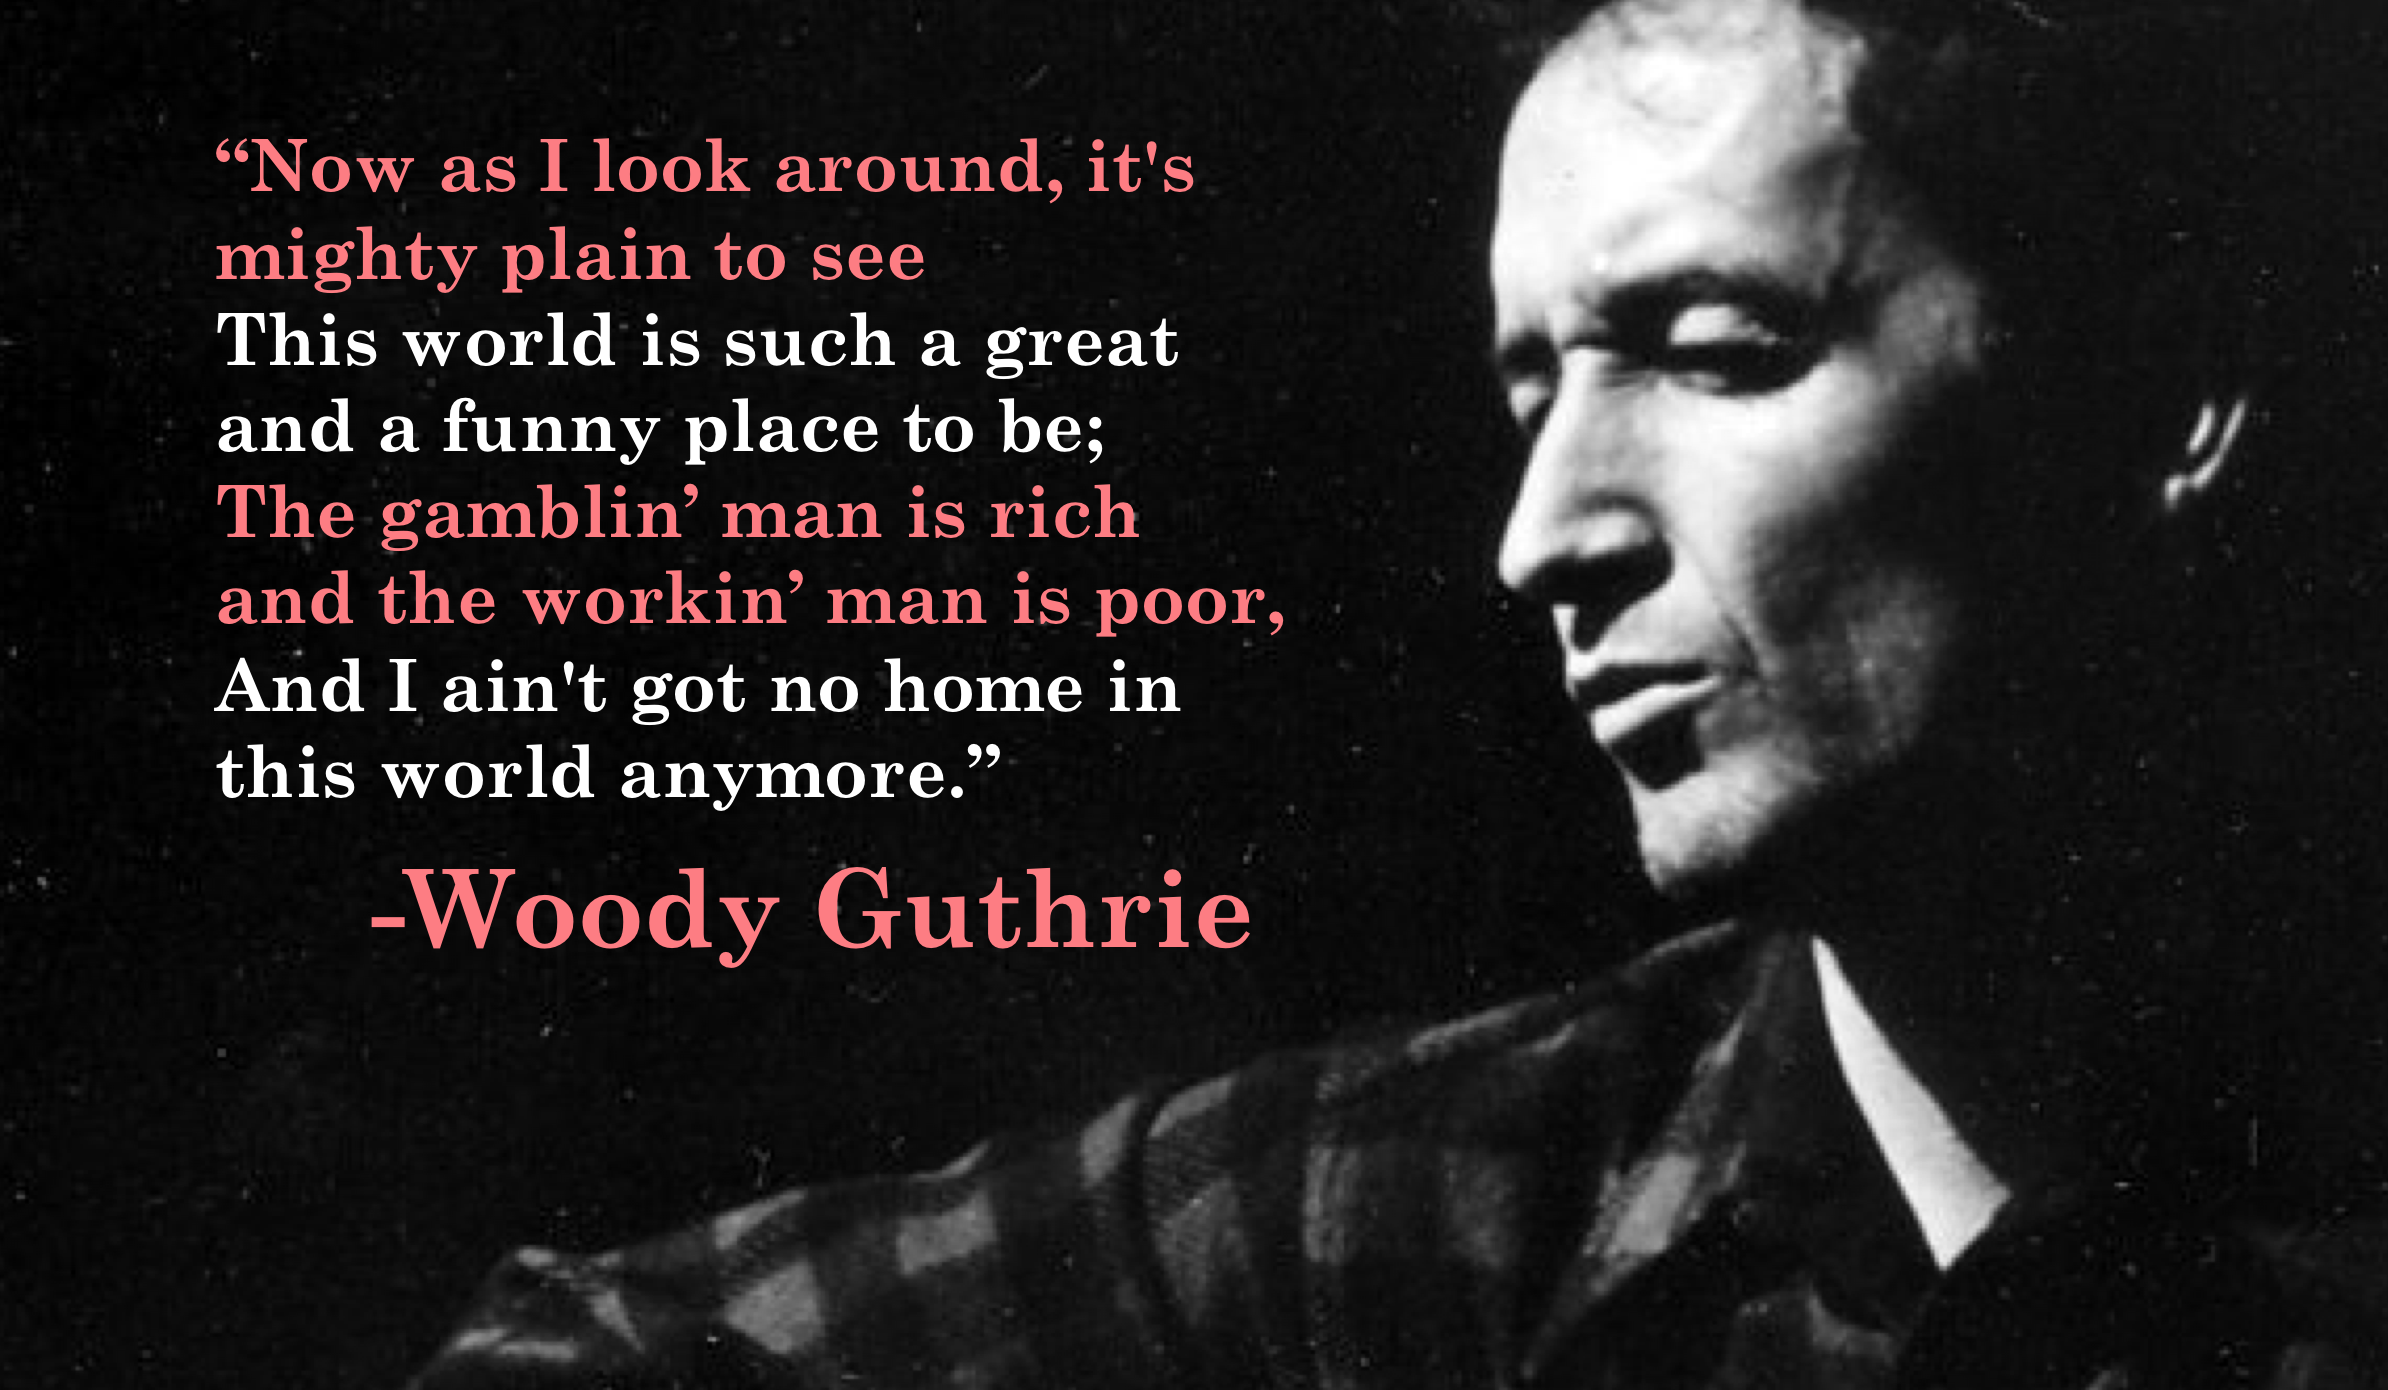 """…I ain't got no home in this world anymore."" -Woody Guthrie [2388×1390]"